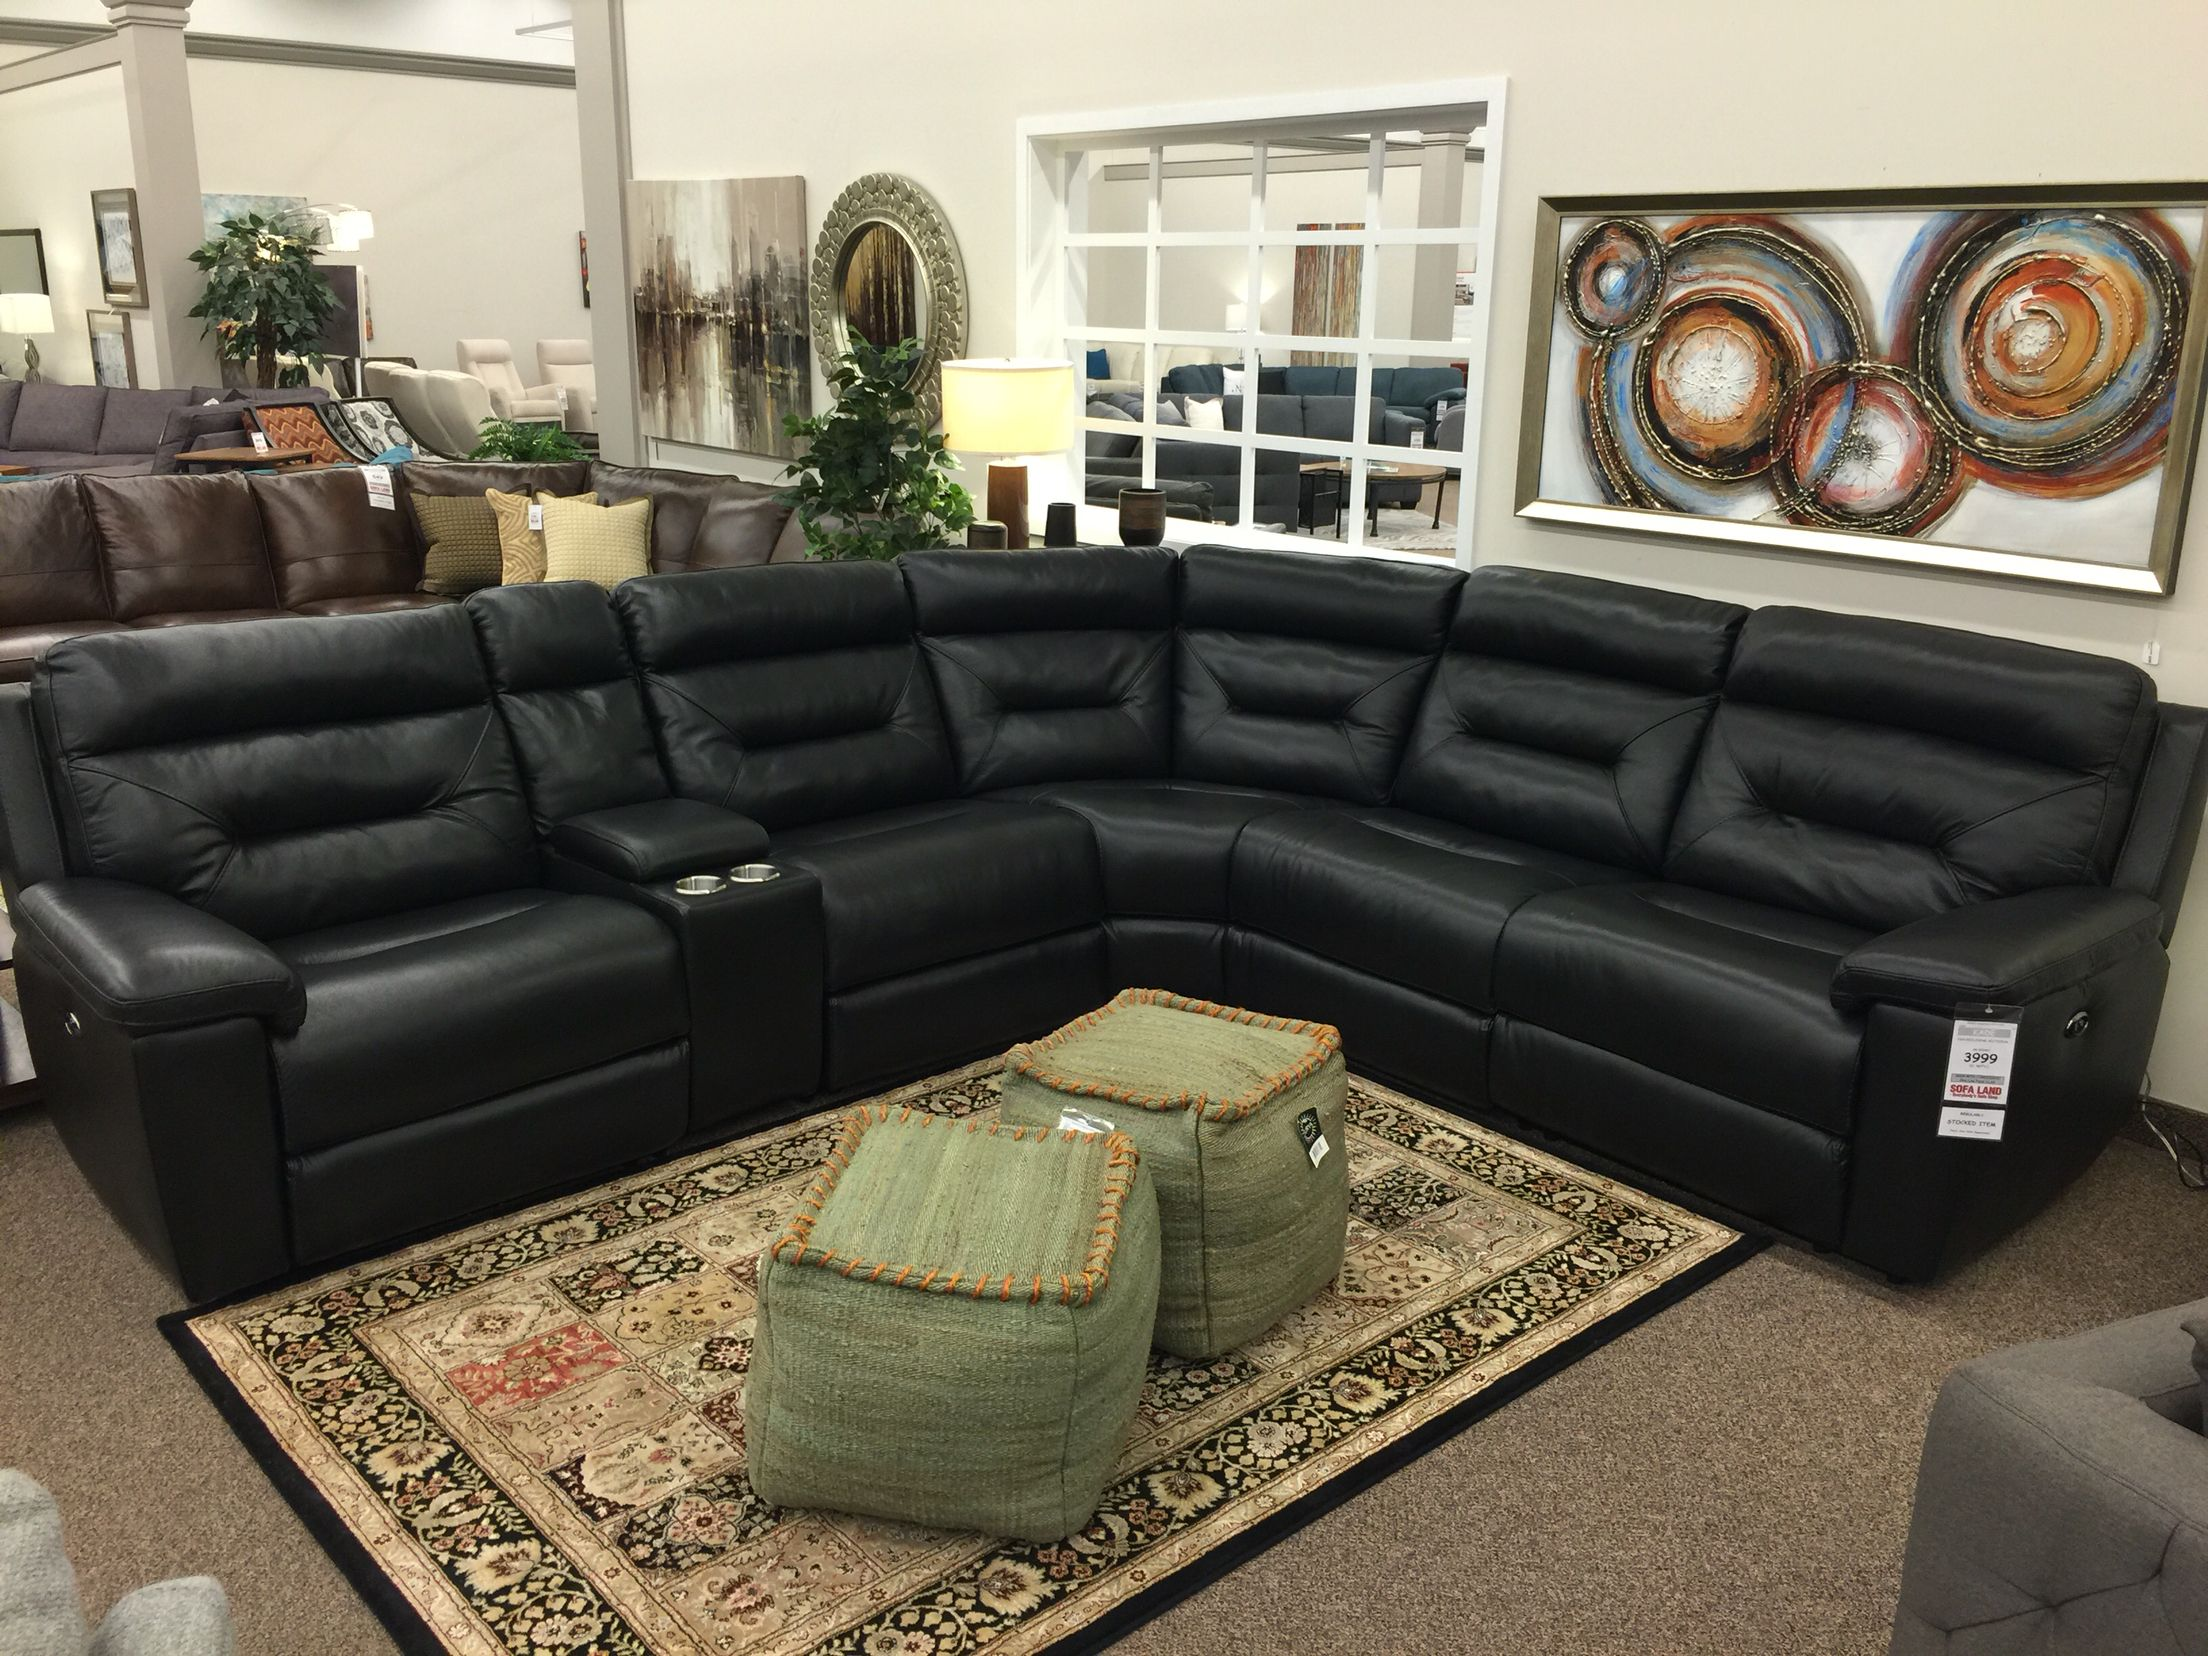 For more info visit .sofaland.ca/kade #Comfort #Recline #Power #Quality # Leather #Sectional ... : quality leather sectional - Sectionals, Sofas & Couches